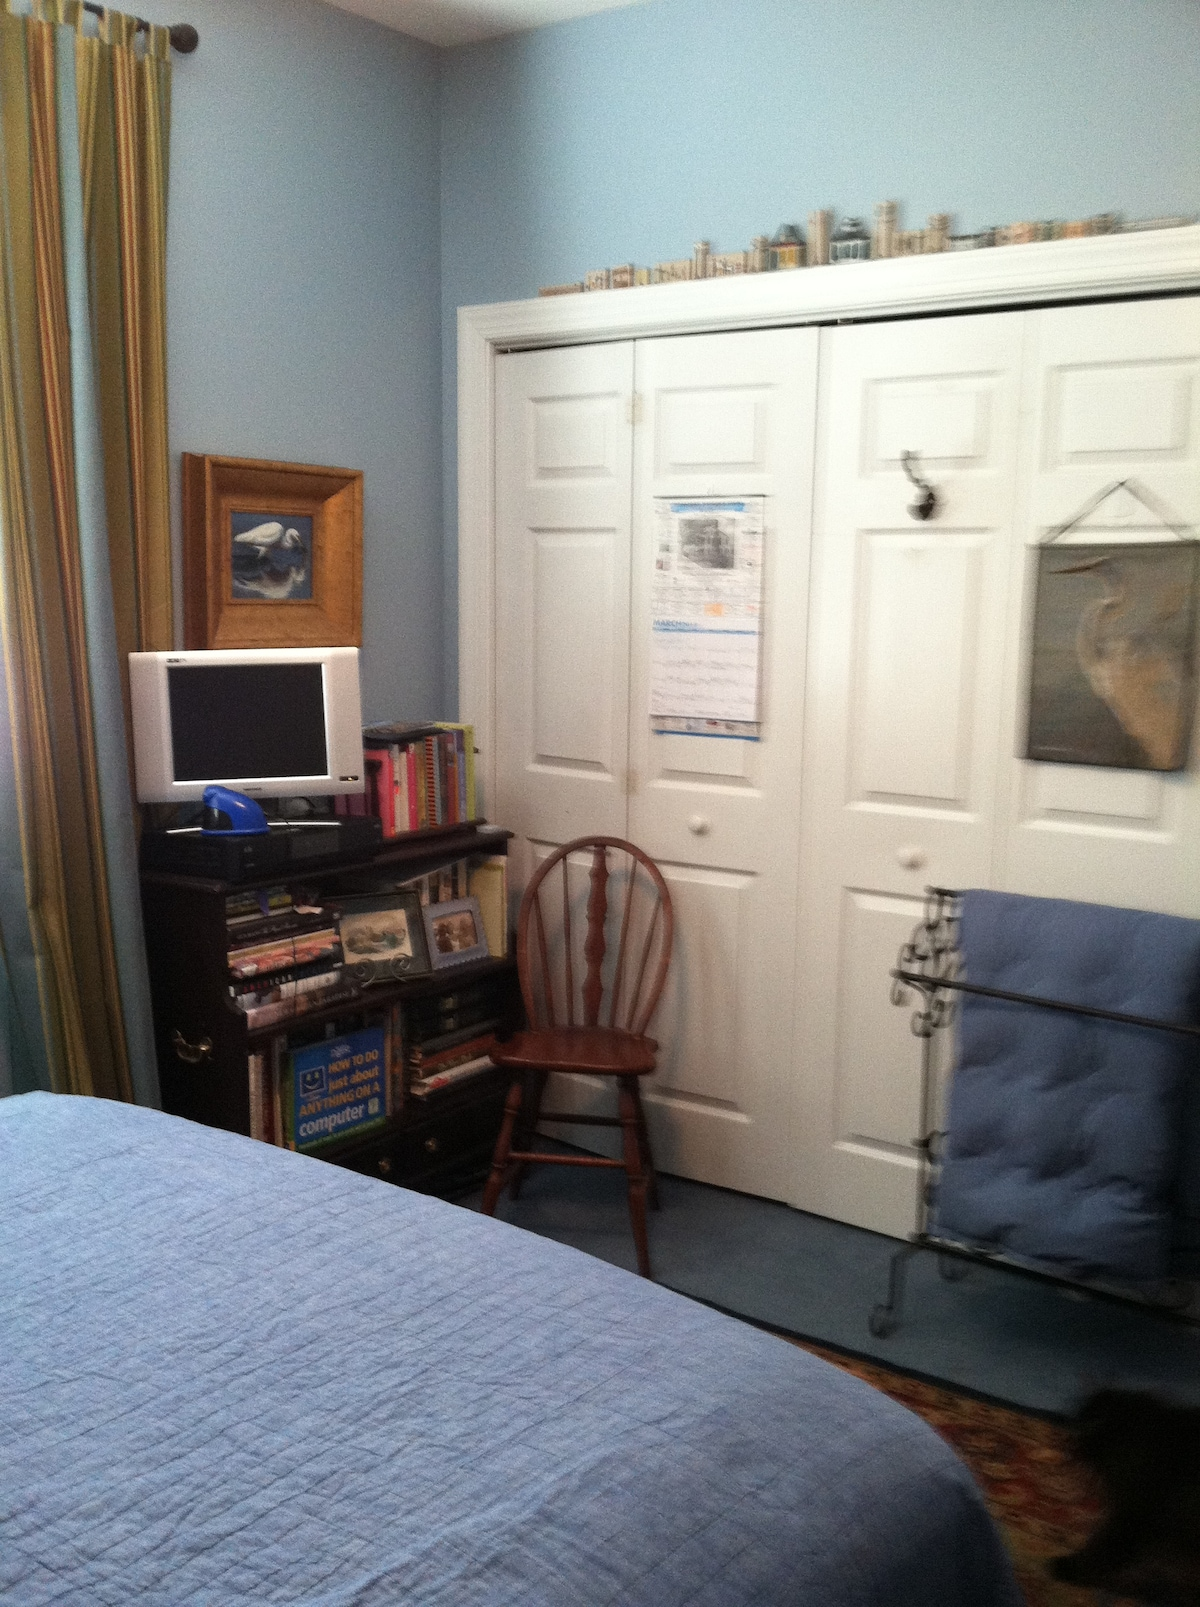 The LCD television & closet.